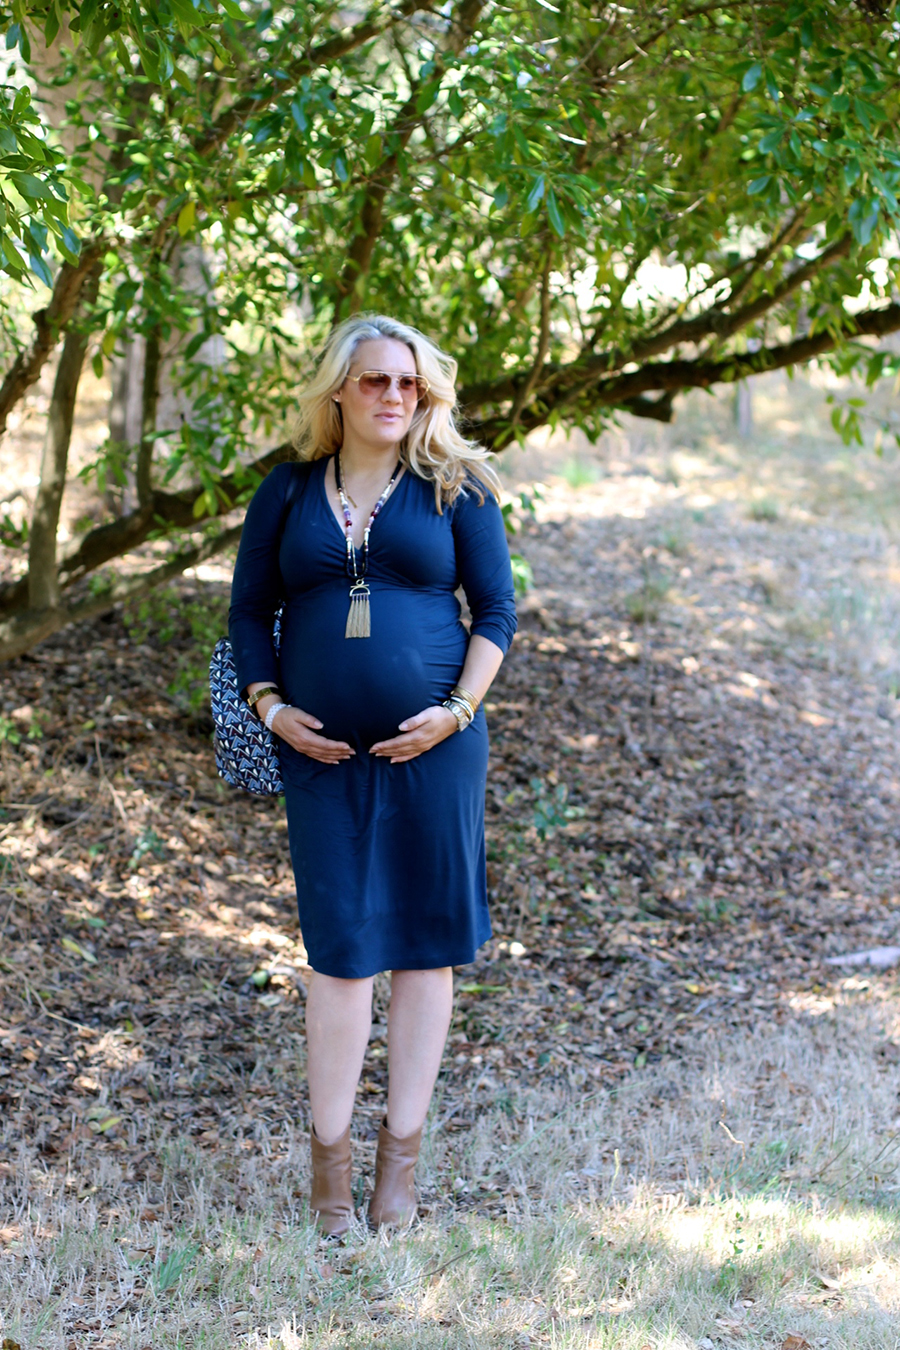 Shirred Dress-Maternity Style-Fashion Blogger-Stella & Dot-Fall Style-Pregnancy Style 2